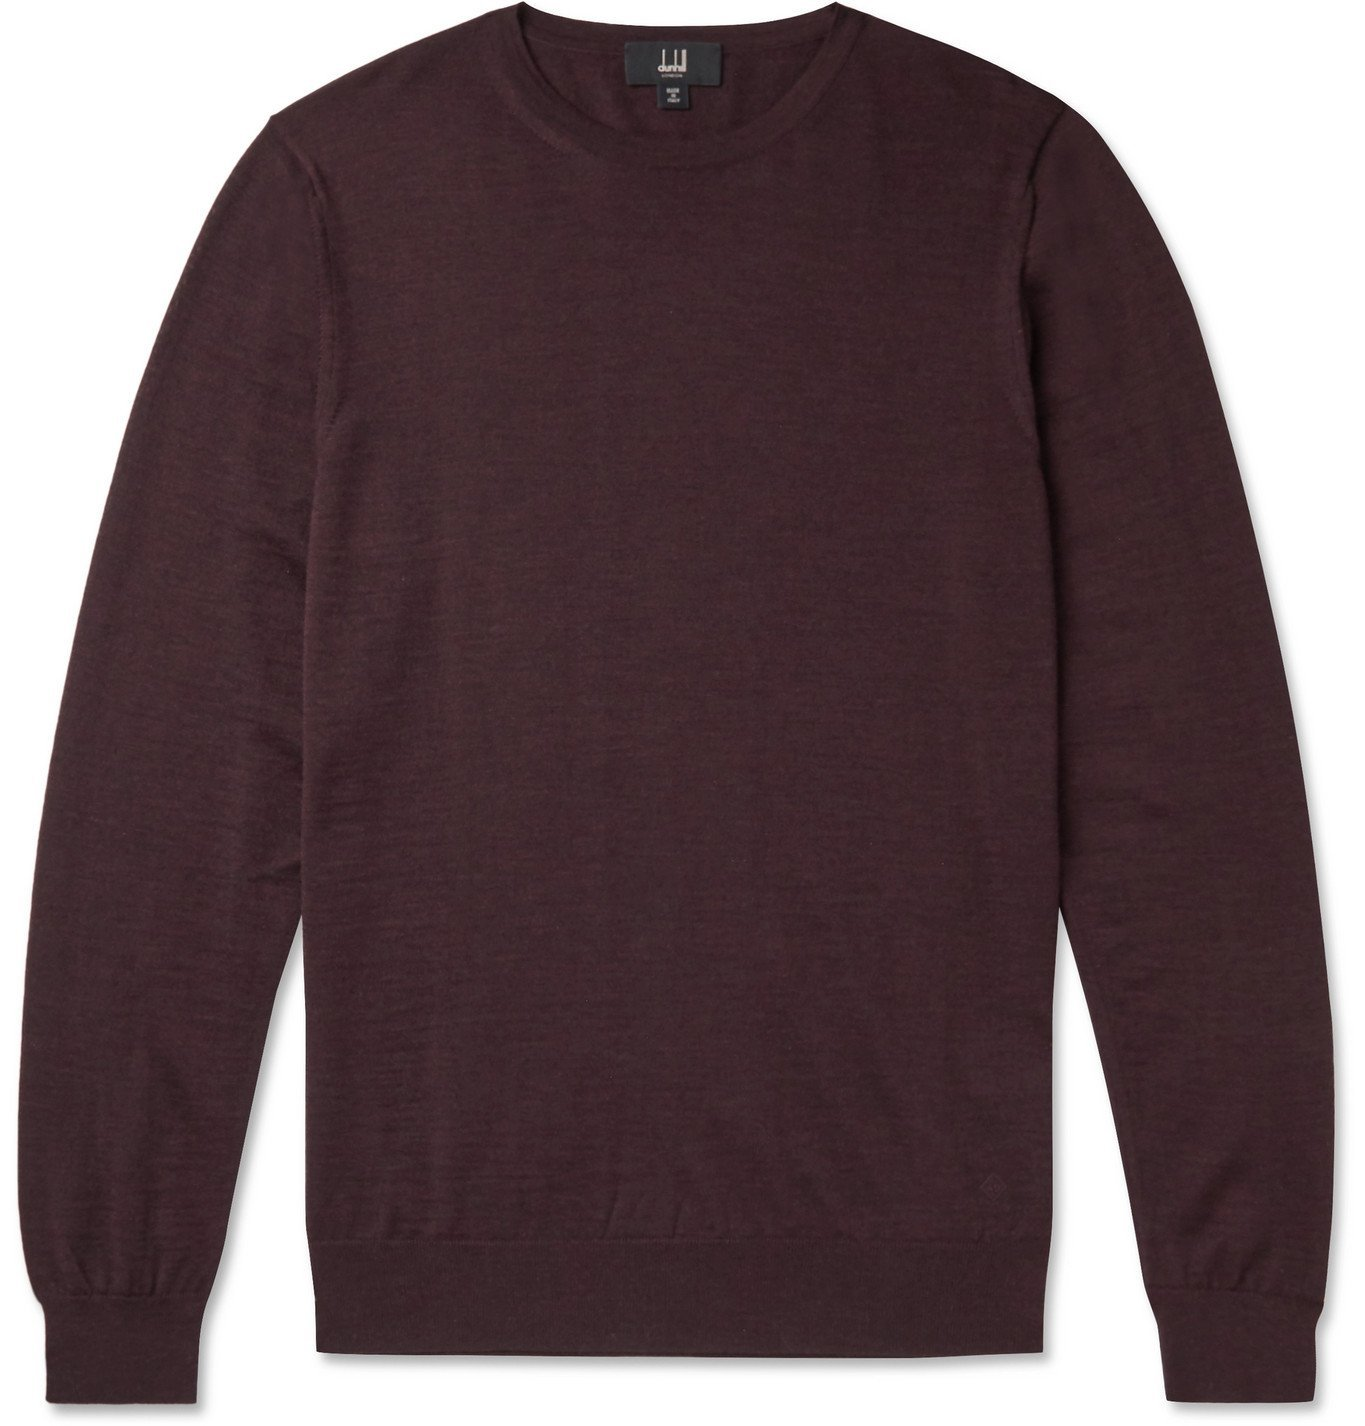 Dunhill - Slim-Fit Wool Sweater - Unknown